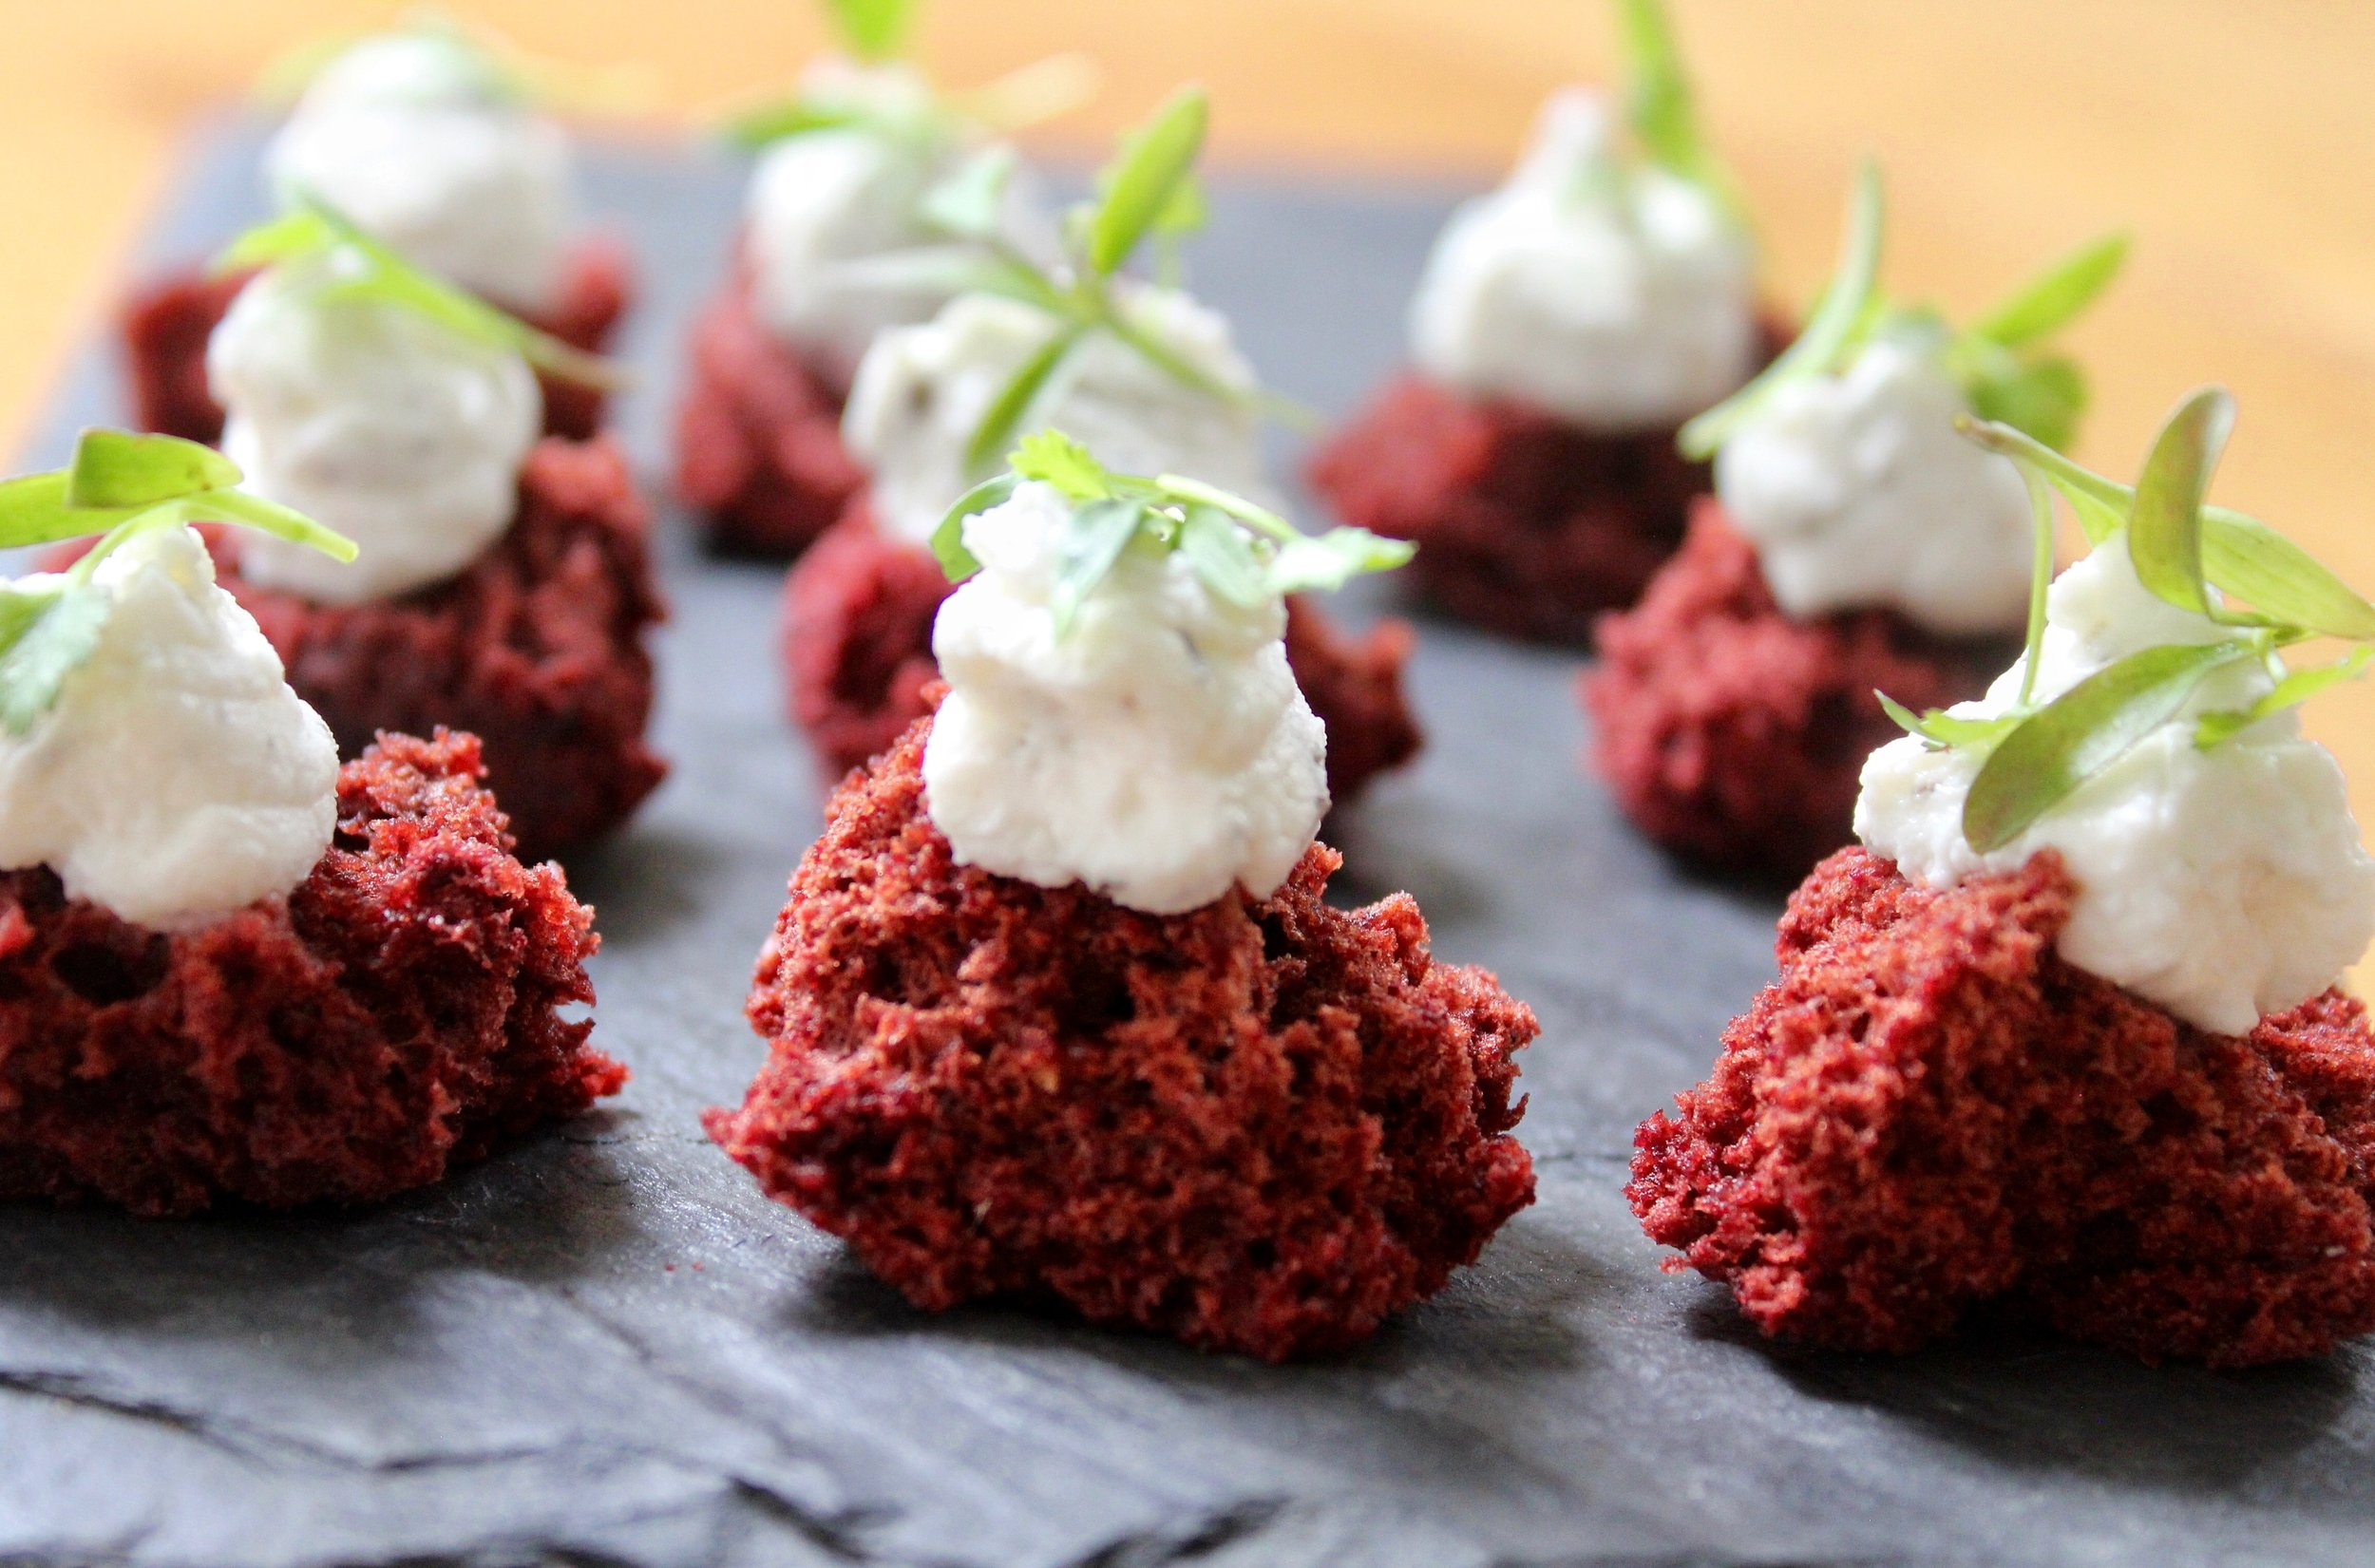 - Beet sponge with whipped goat cheese and dill